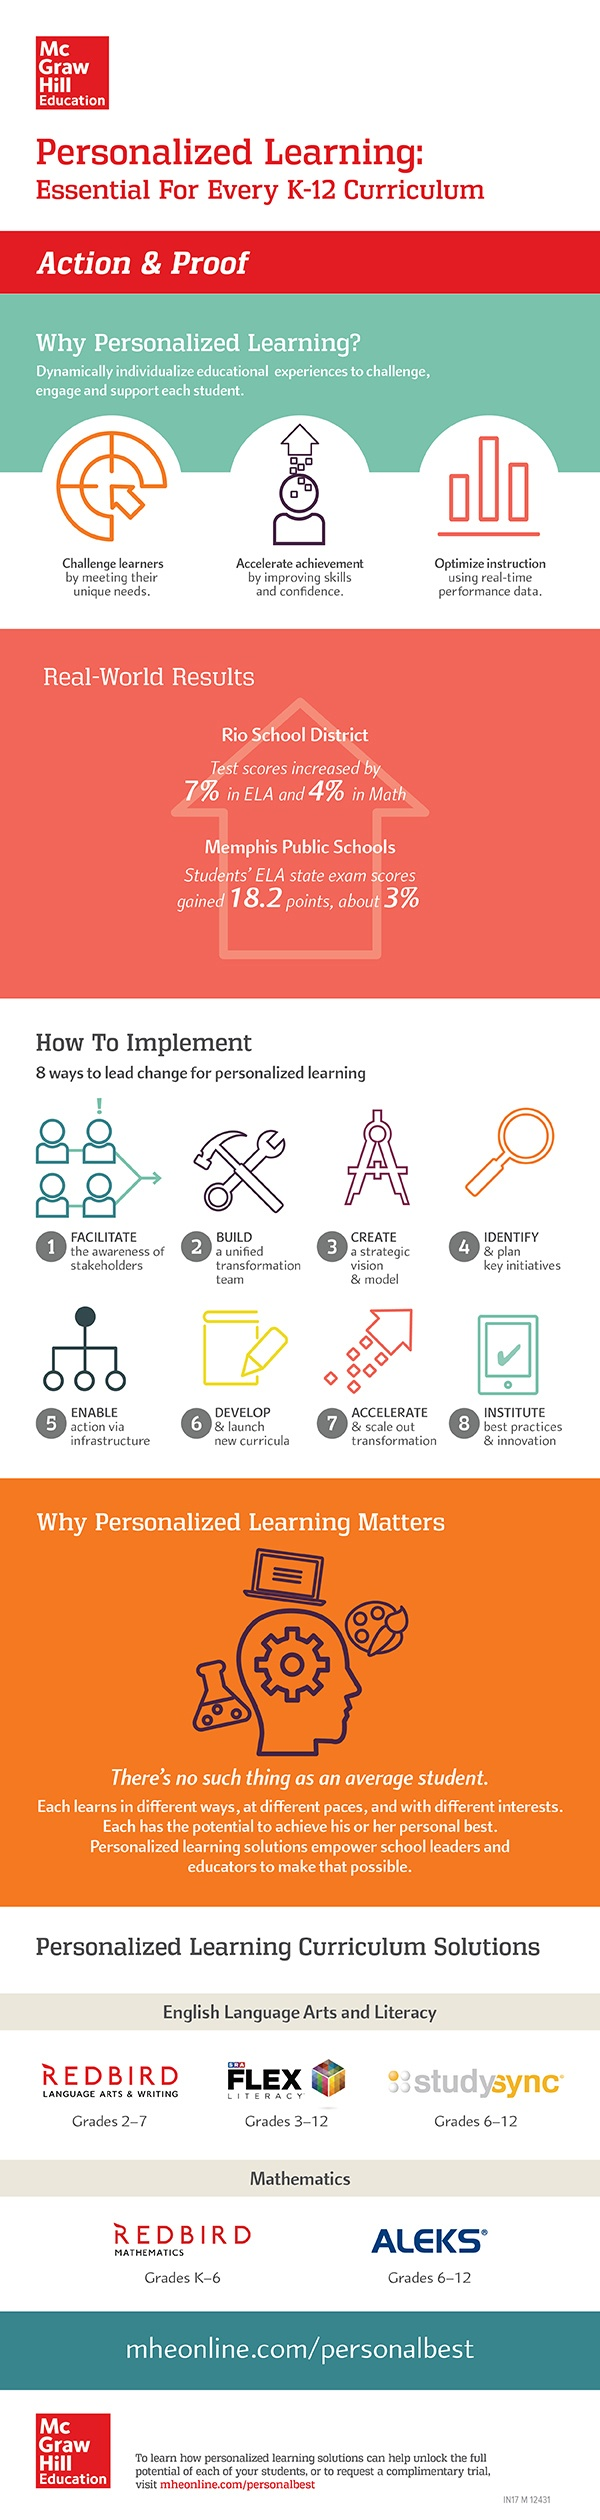 Personalized Learning: Action and Proof Infographic